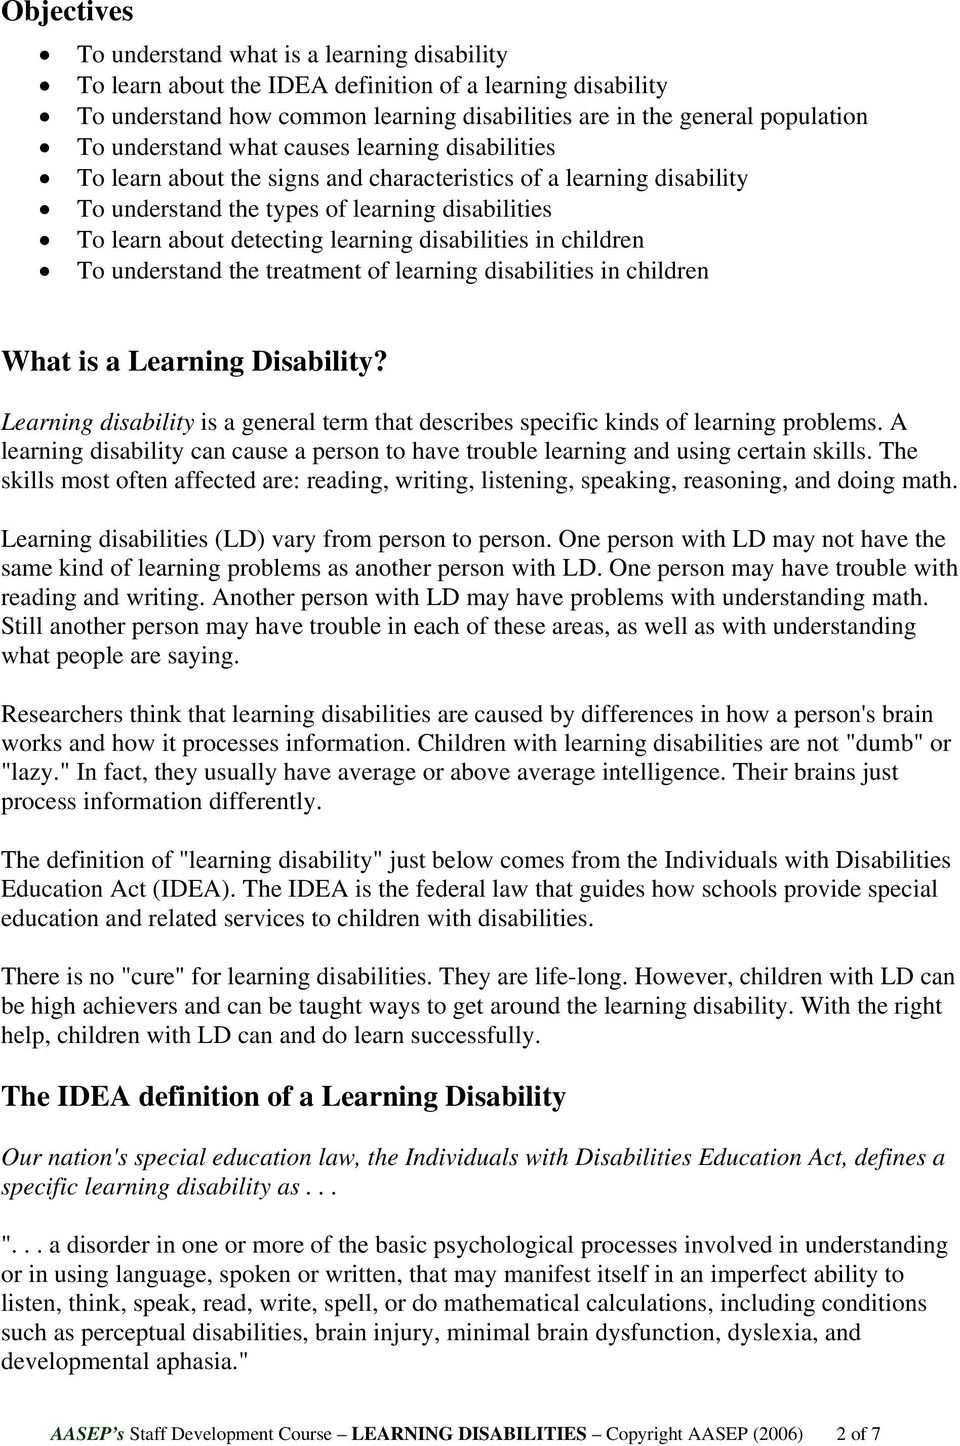 Is Special Education In Trouble >> Staff Development In Special Education Pdf